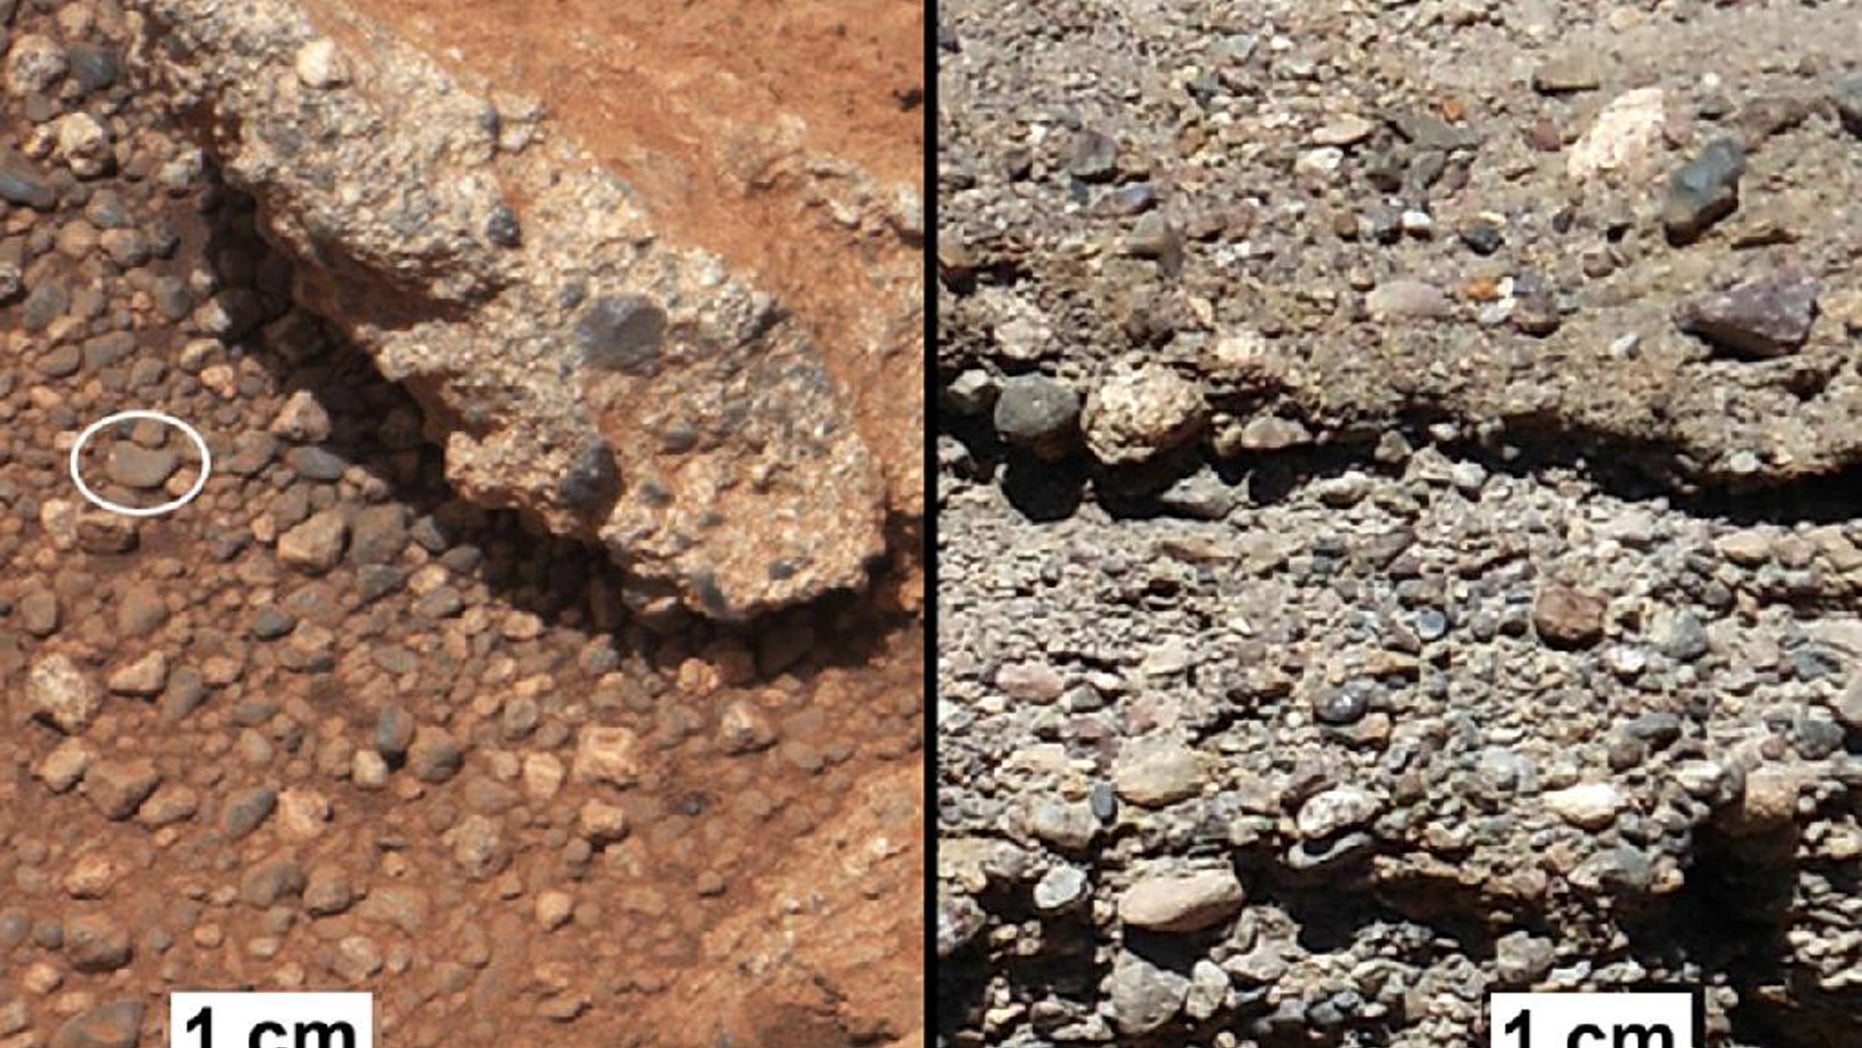 This image provided by NASA shows shows a Martian rock outcrop near the landing site of the rover Curiosity thought to be the site of an ancient streambed, next to similar rocks shown on earth. Curiosity landed in a crater near Mars' equator on Aug. 5, 2012, on a two-year mission to study whether the environment could have been favorable for microbial life. (AP Photo/NASA)